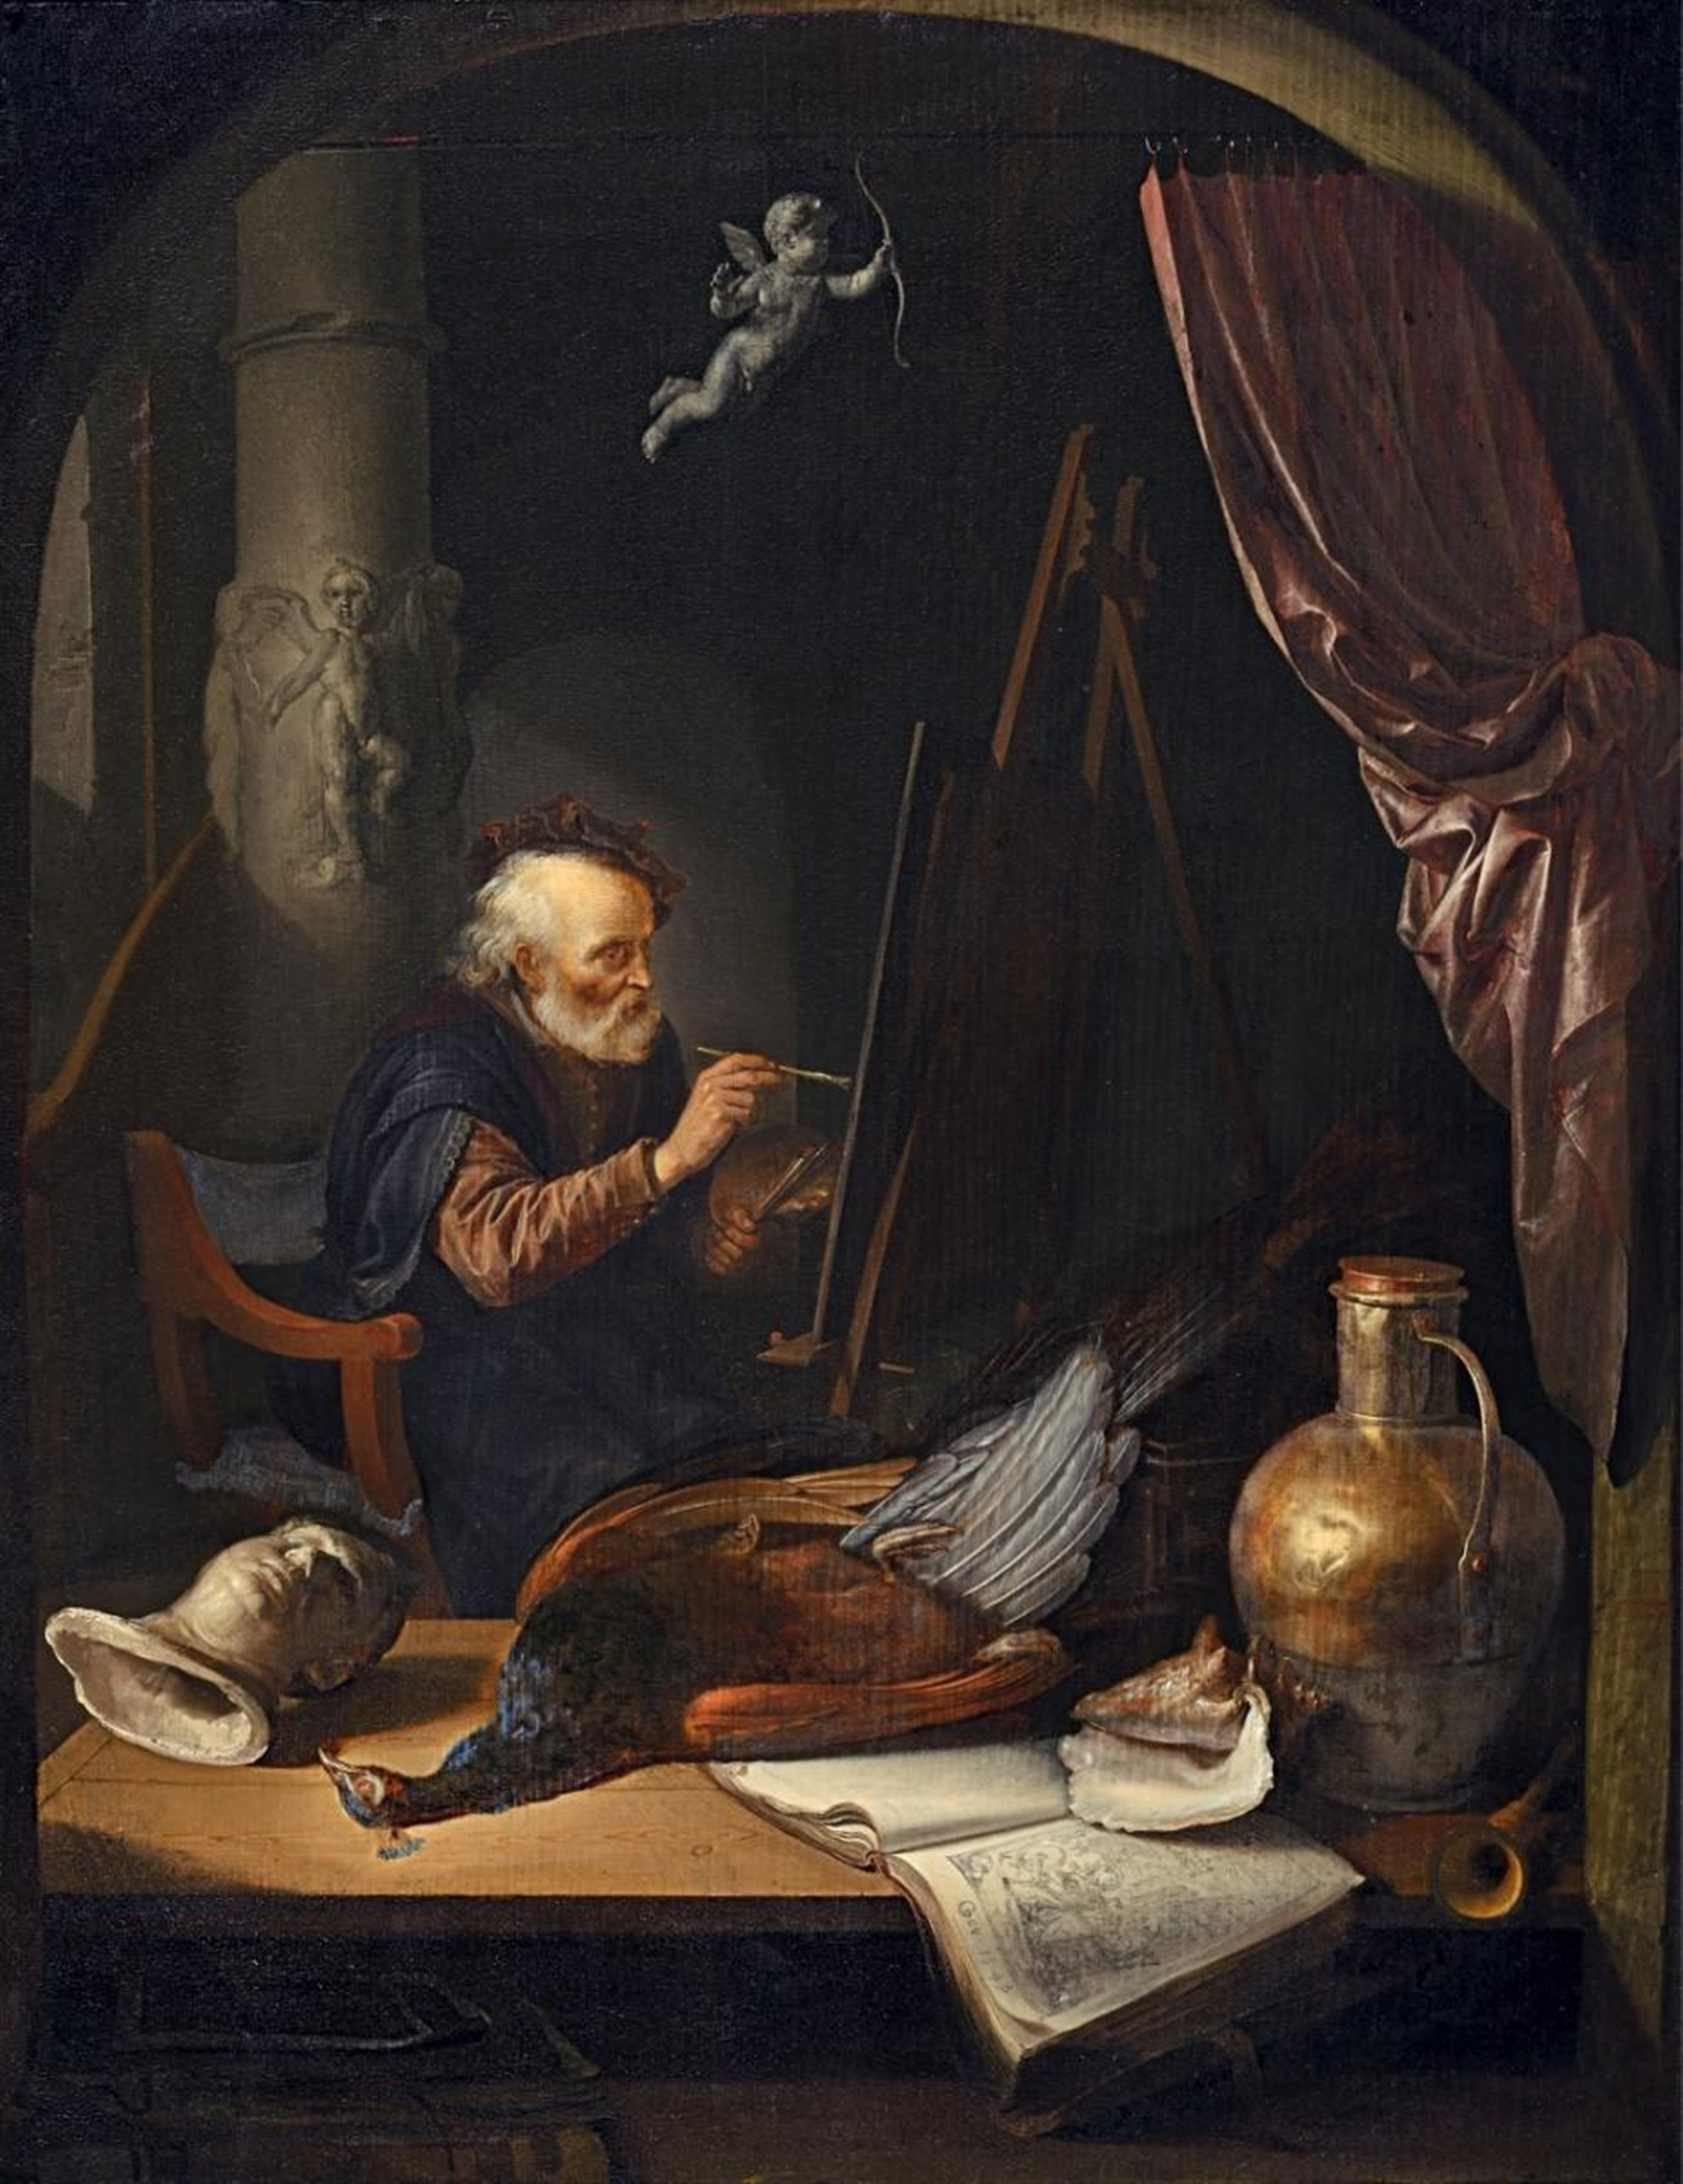 Lempertz-995-1258-Old-Masters-and-19th-Centuries-Paintings-Gerard-Dou-Painter-in-his-Studio